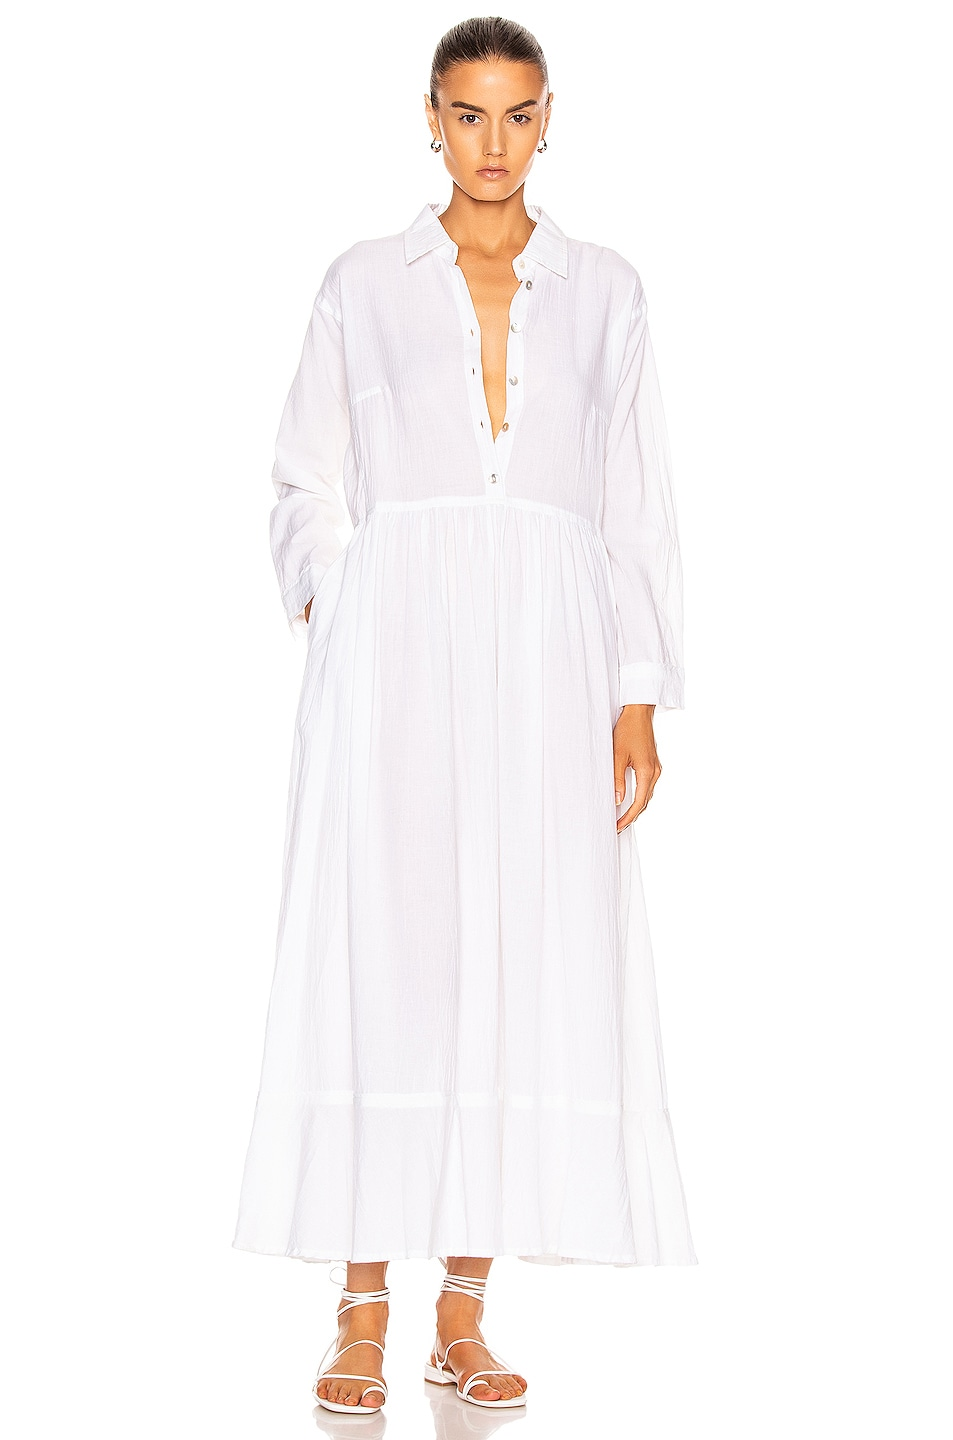 Image 1 of Natalie Martin Heath Dress in Flat Cotton White